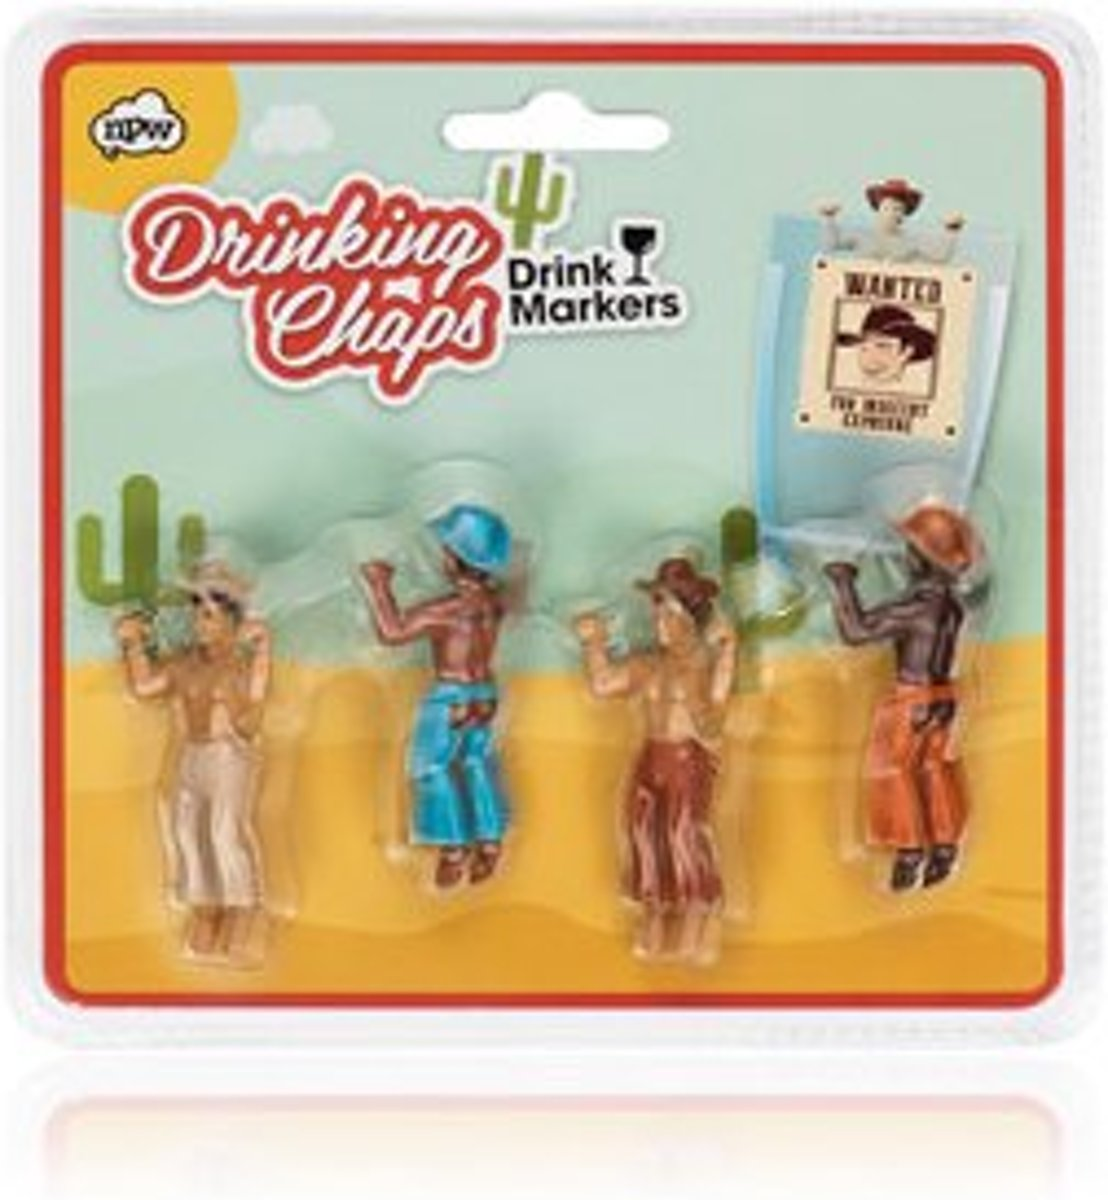 Npw Drinking Chaps Drink Markers